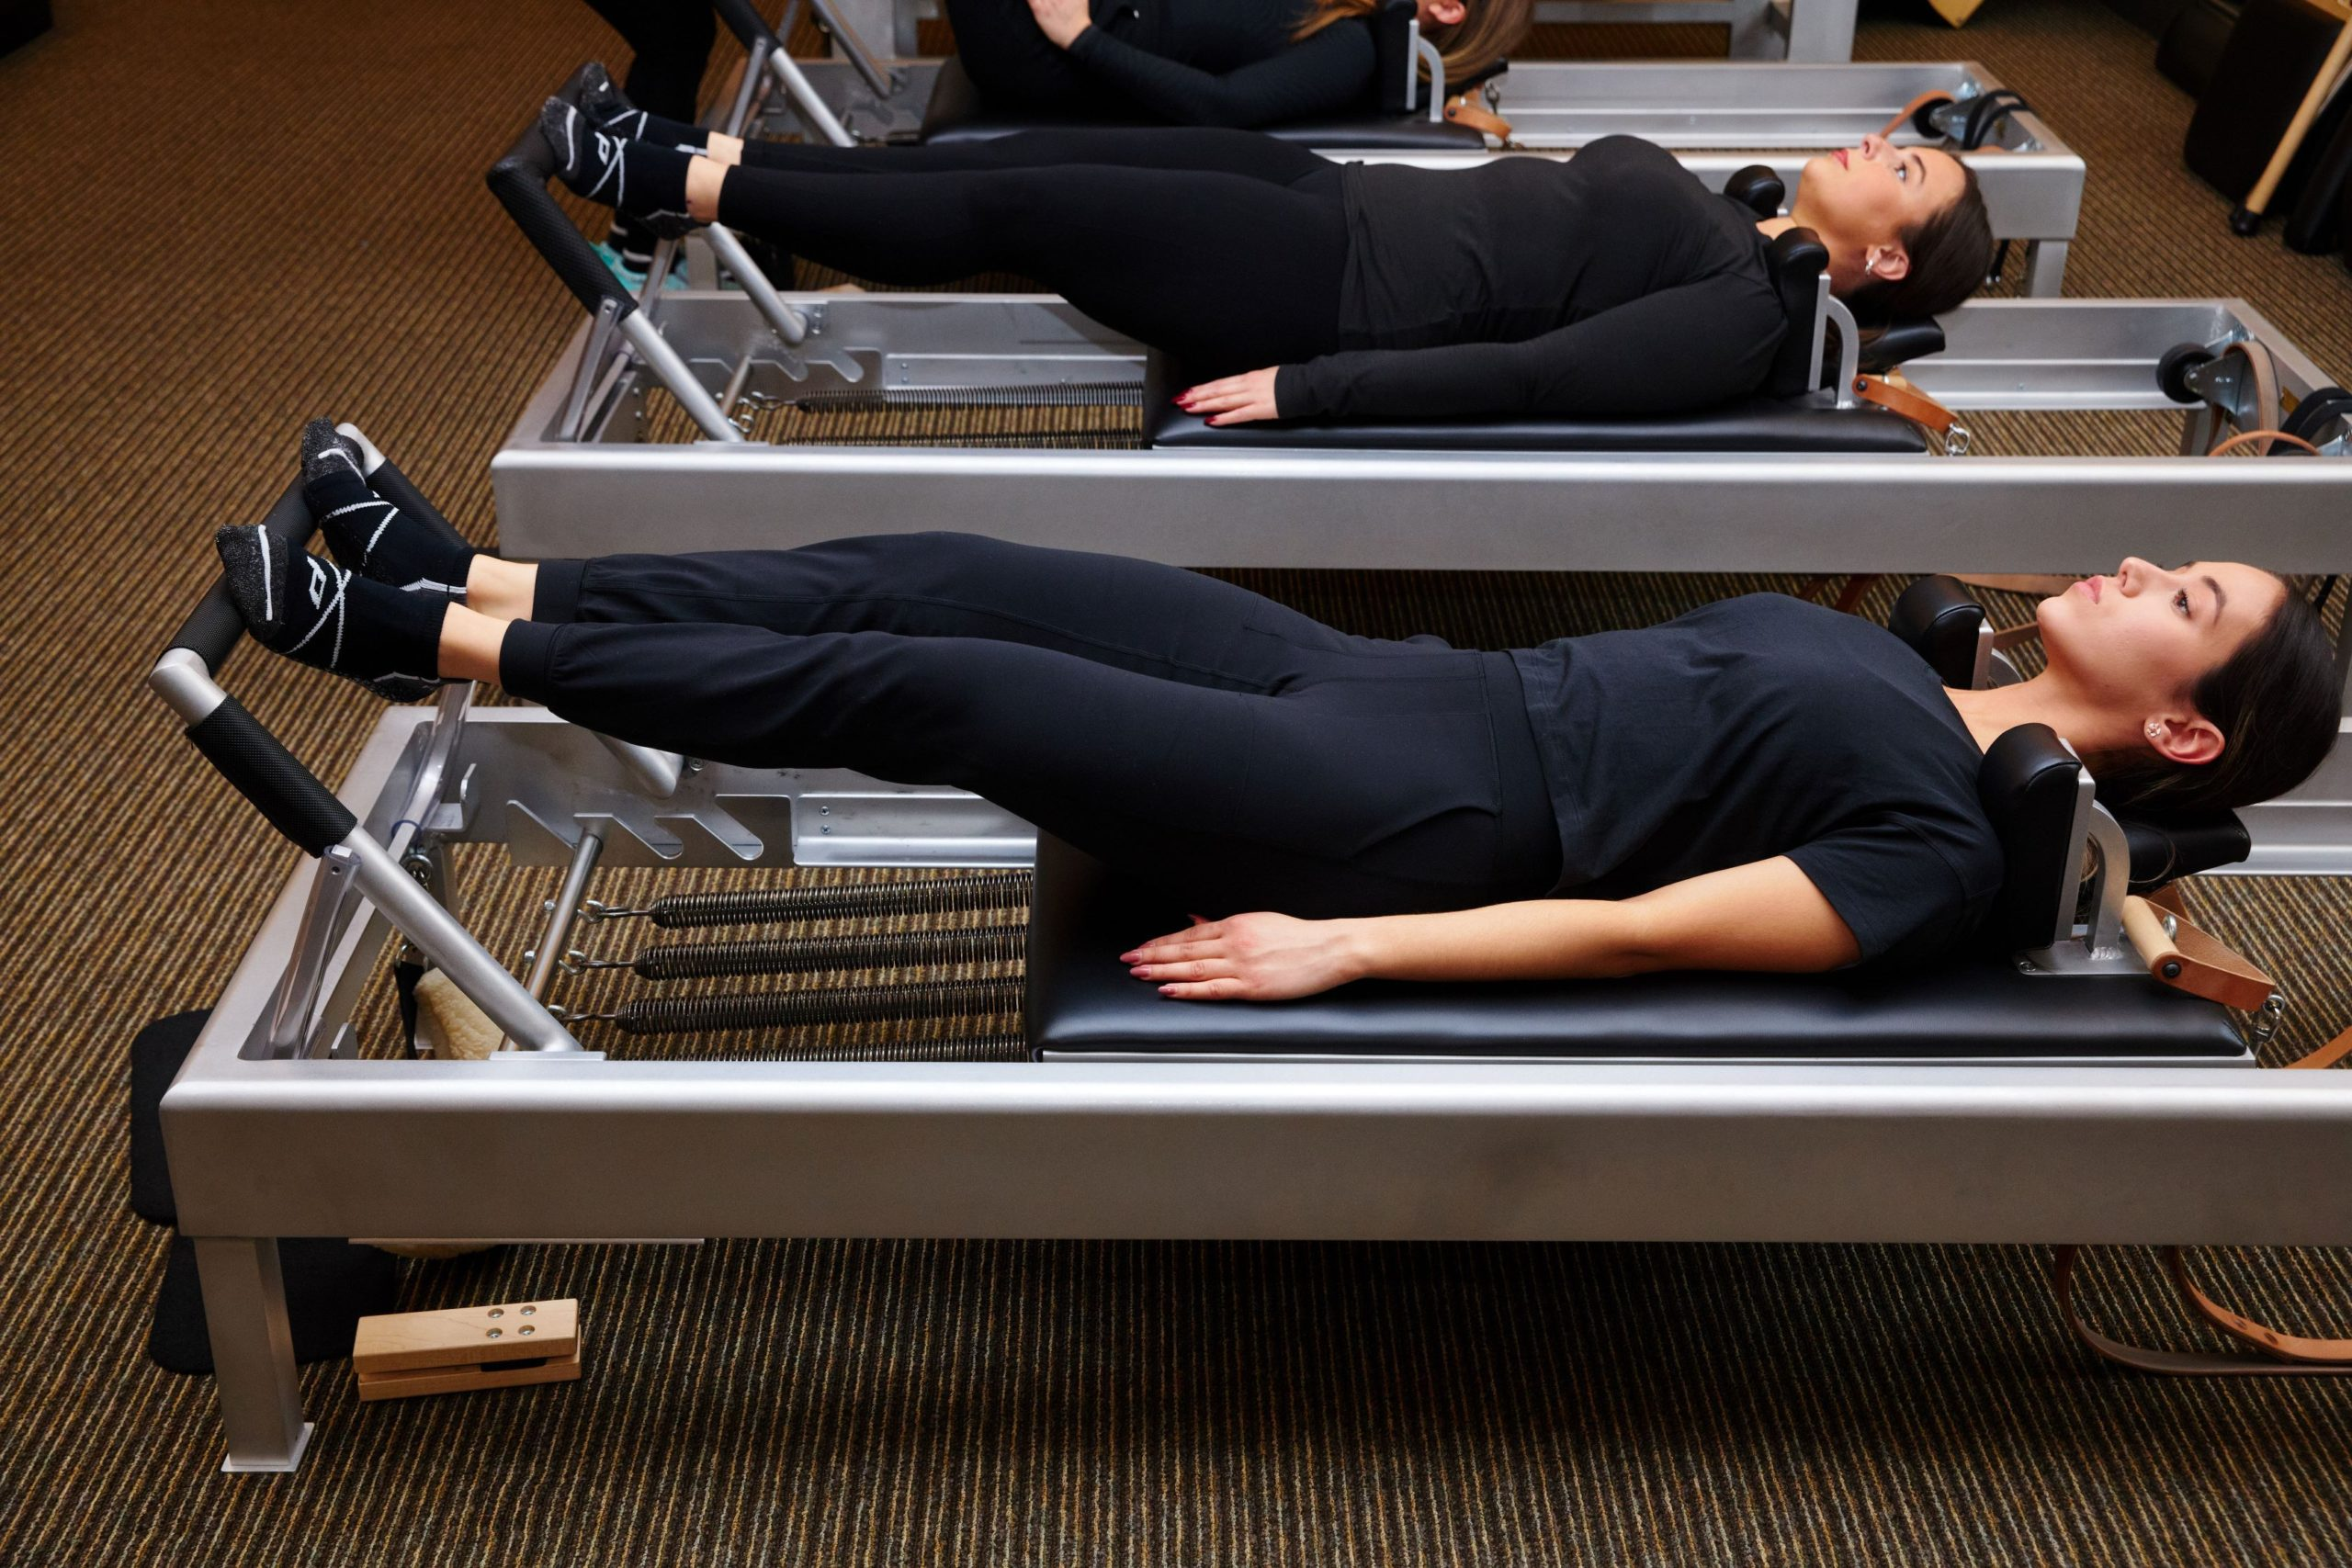 3 women on benches working out with pedestal socks on